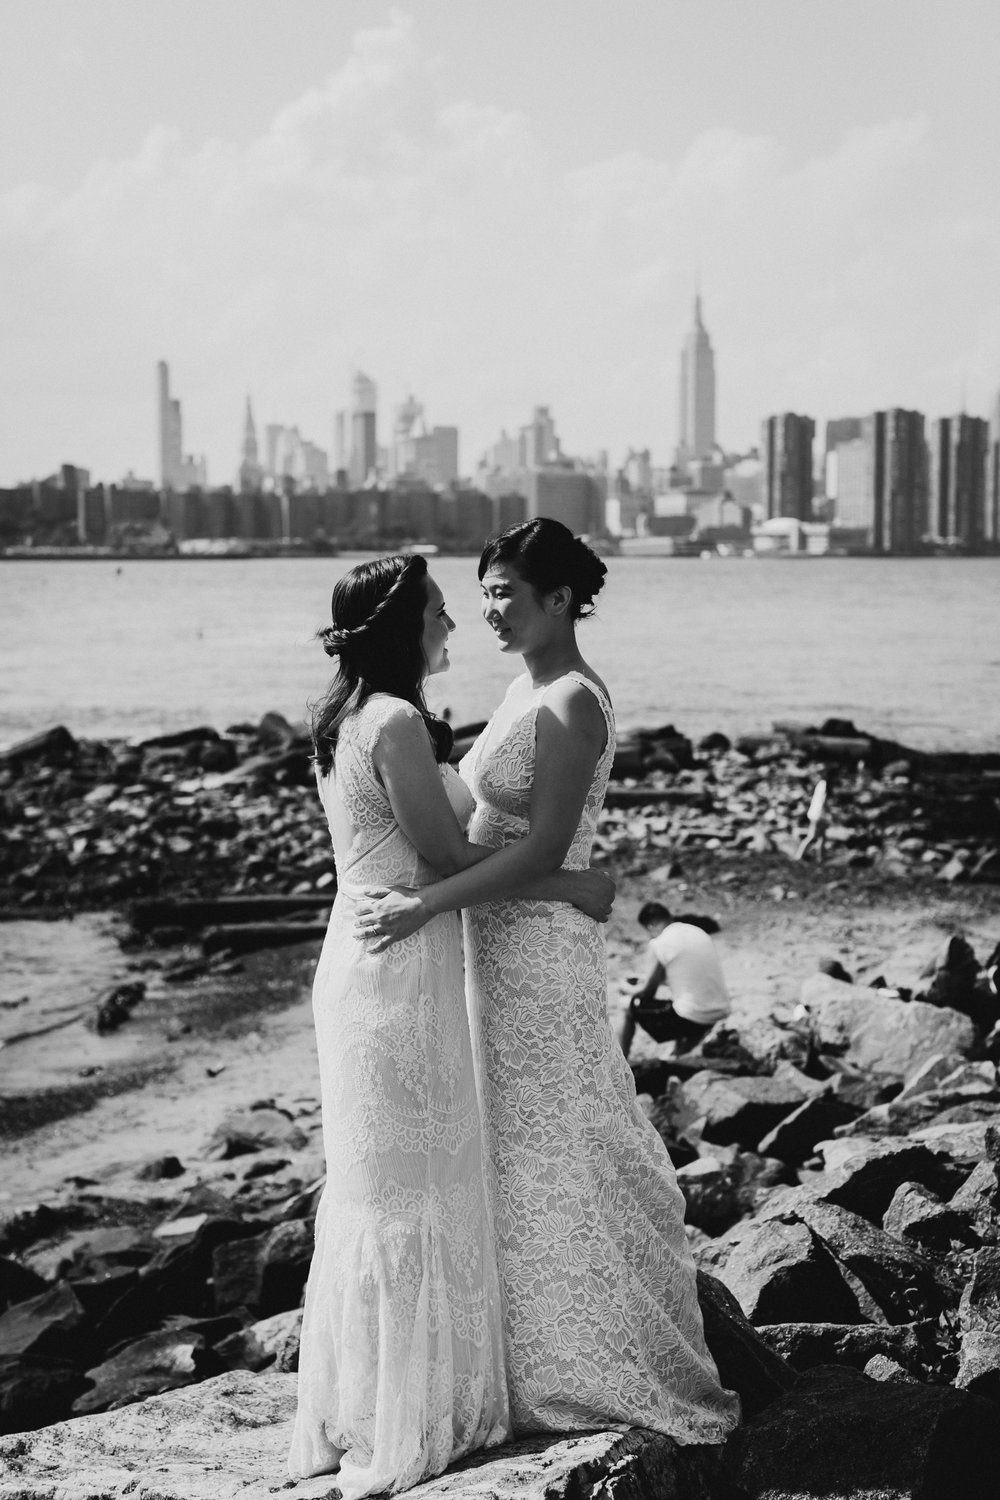 My-Moon-Brooklyn-LGBT-Gay-Documentary-Wedding-Photographer-33.jpg